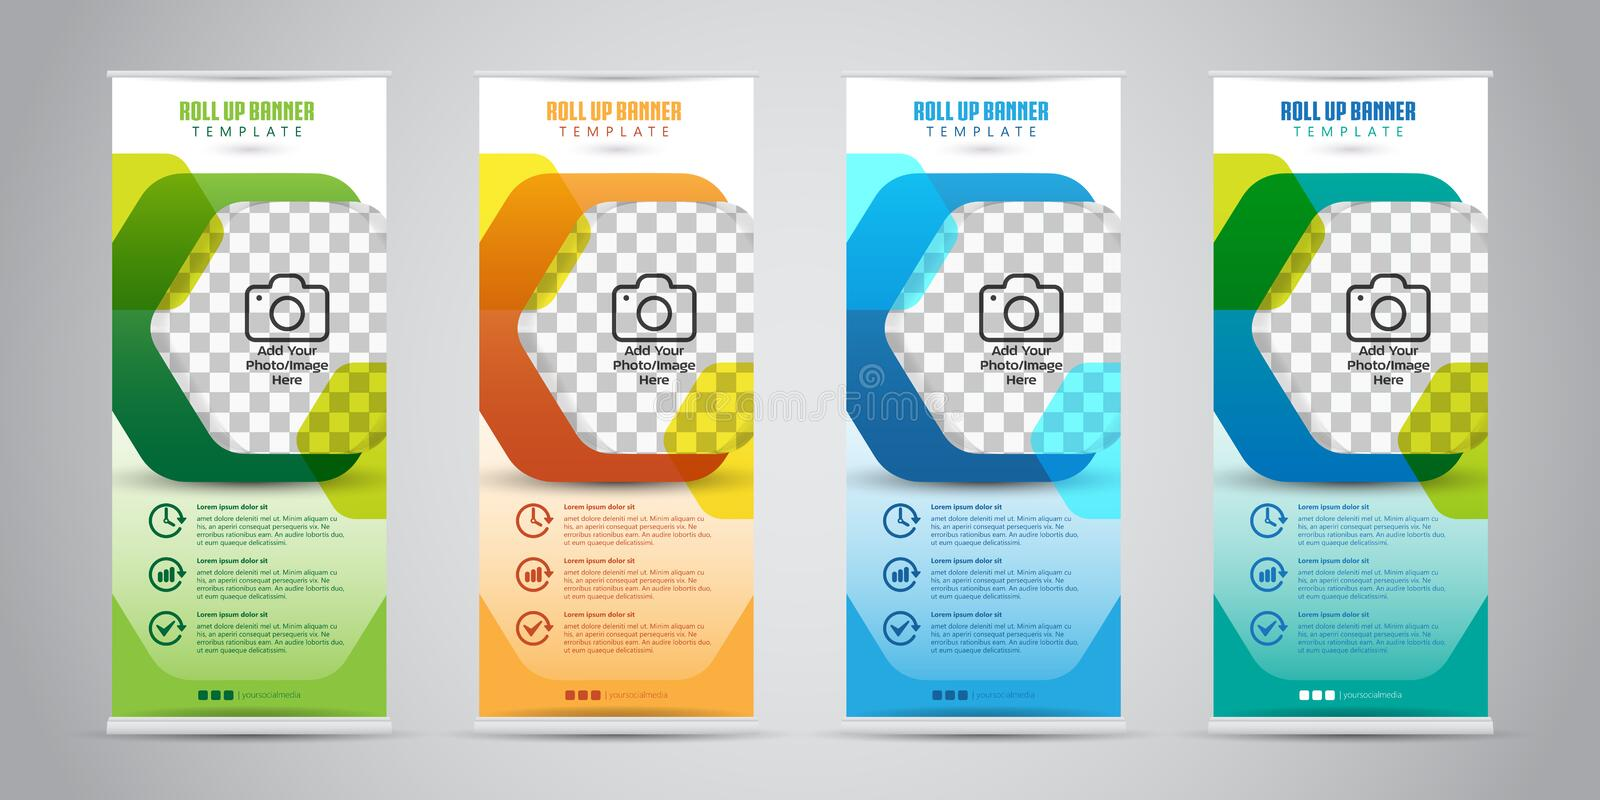 Business Roll Up Banner With 4 Various Color Standee Stock Vector